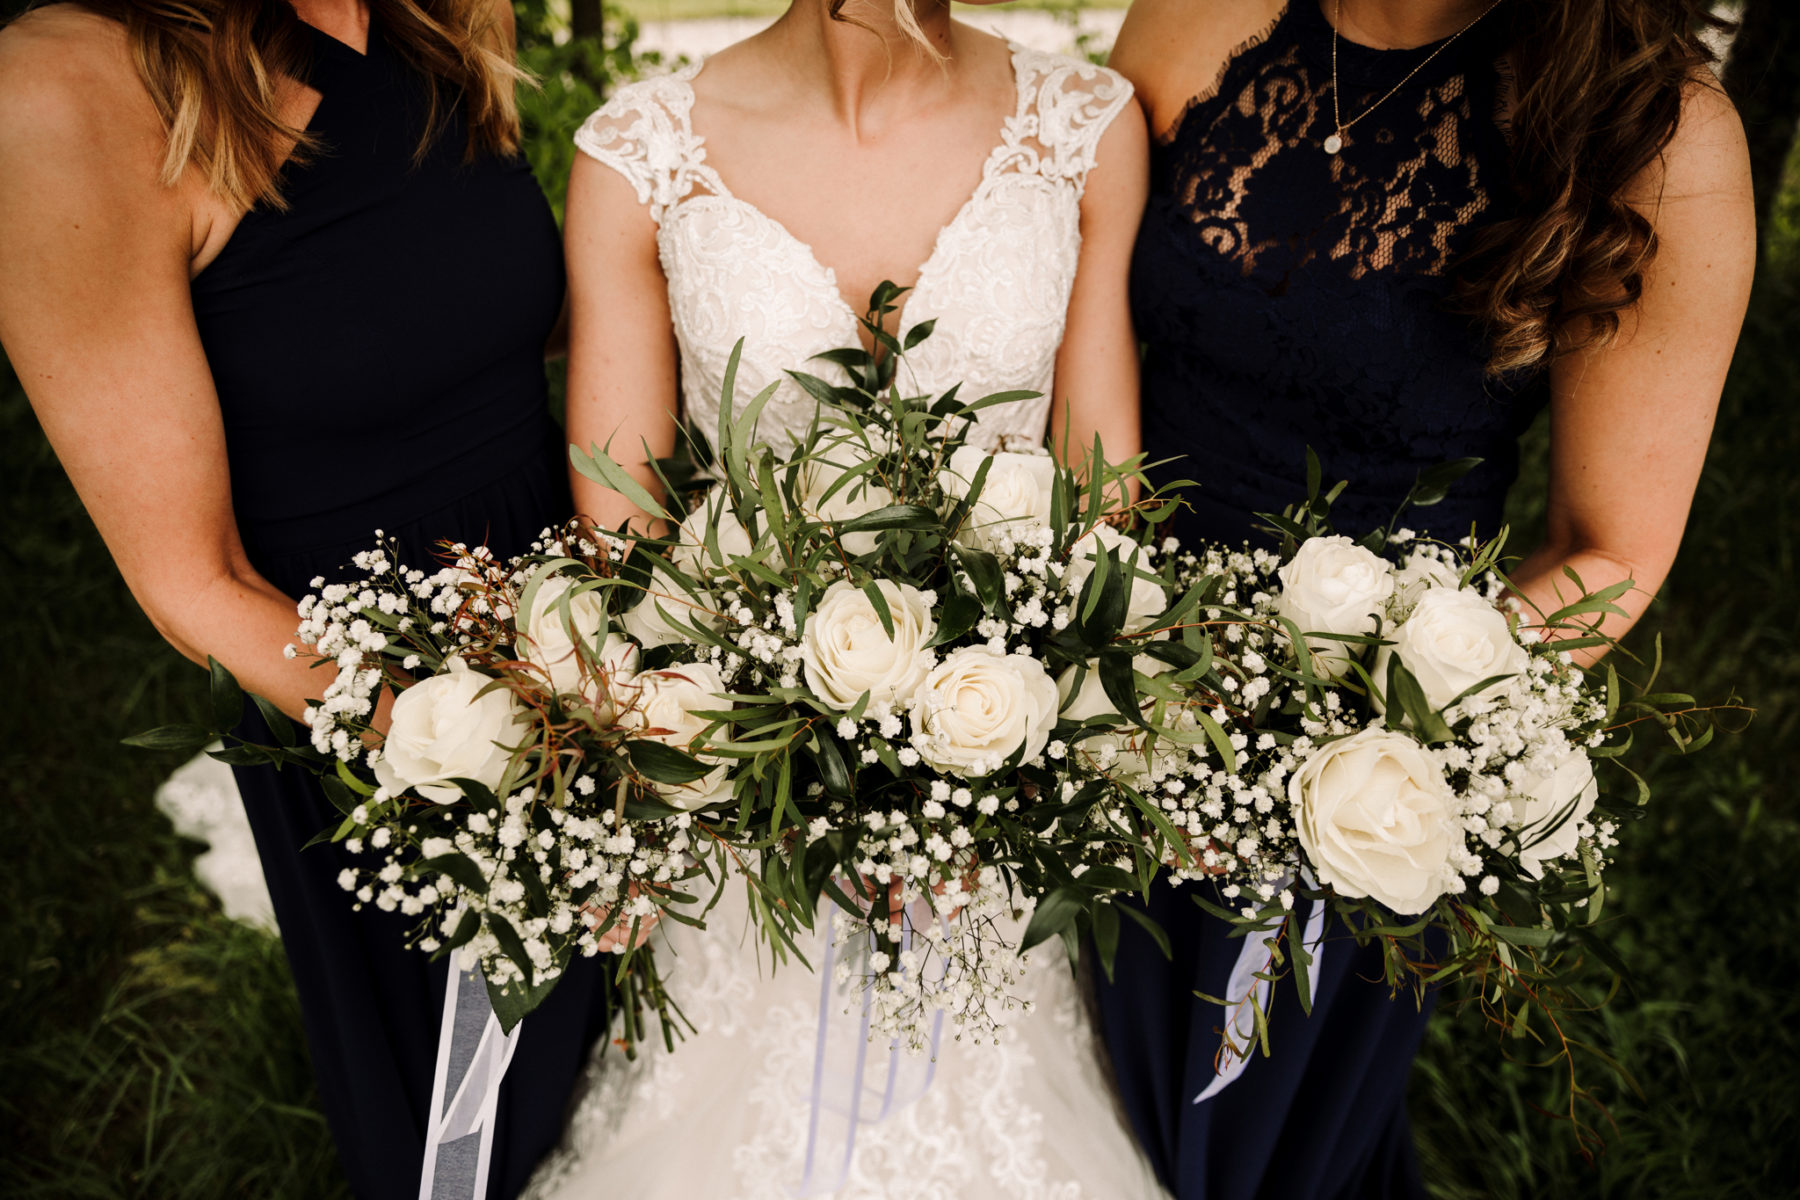 Mattie Lou's Wedding Bouquets: Minimalistic Barn Wedding featured on Nashville Bride Guide